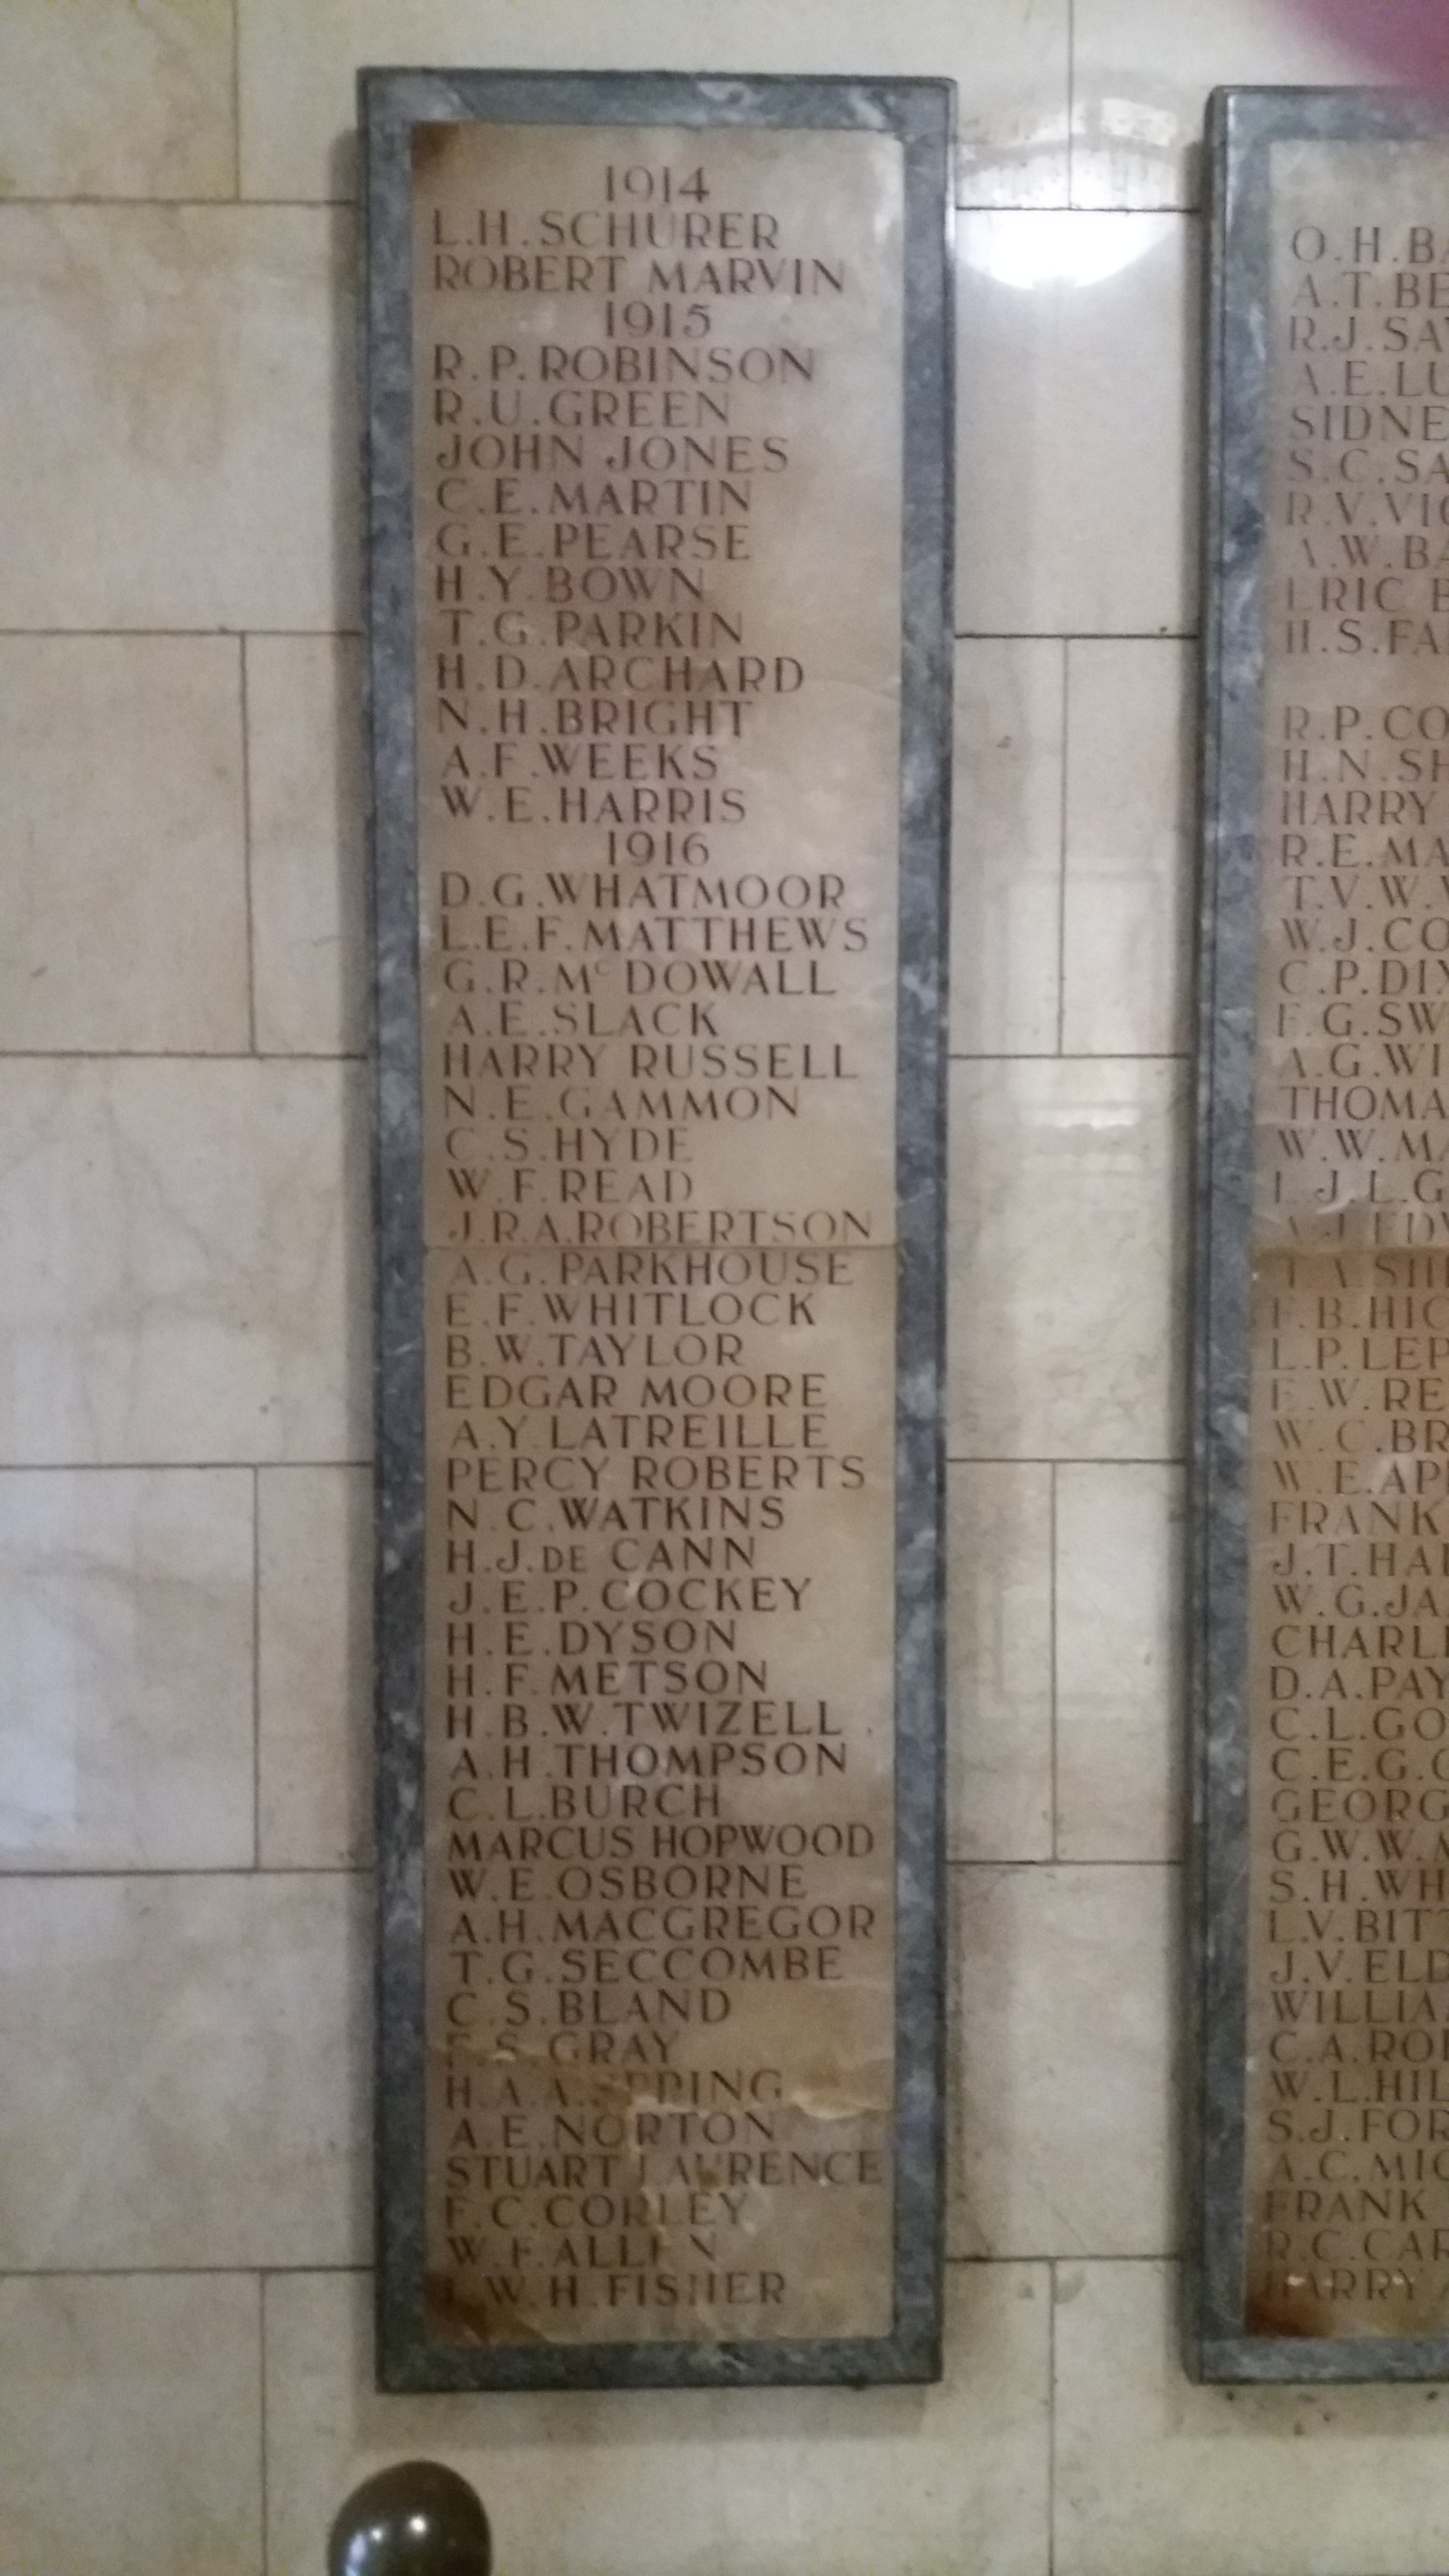 Union Of London And Smiths Bank (WW1) - War Memorials Online